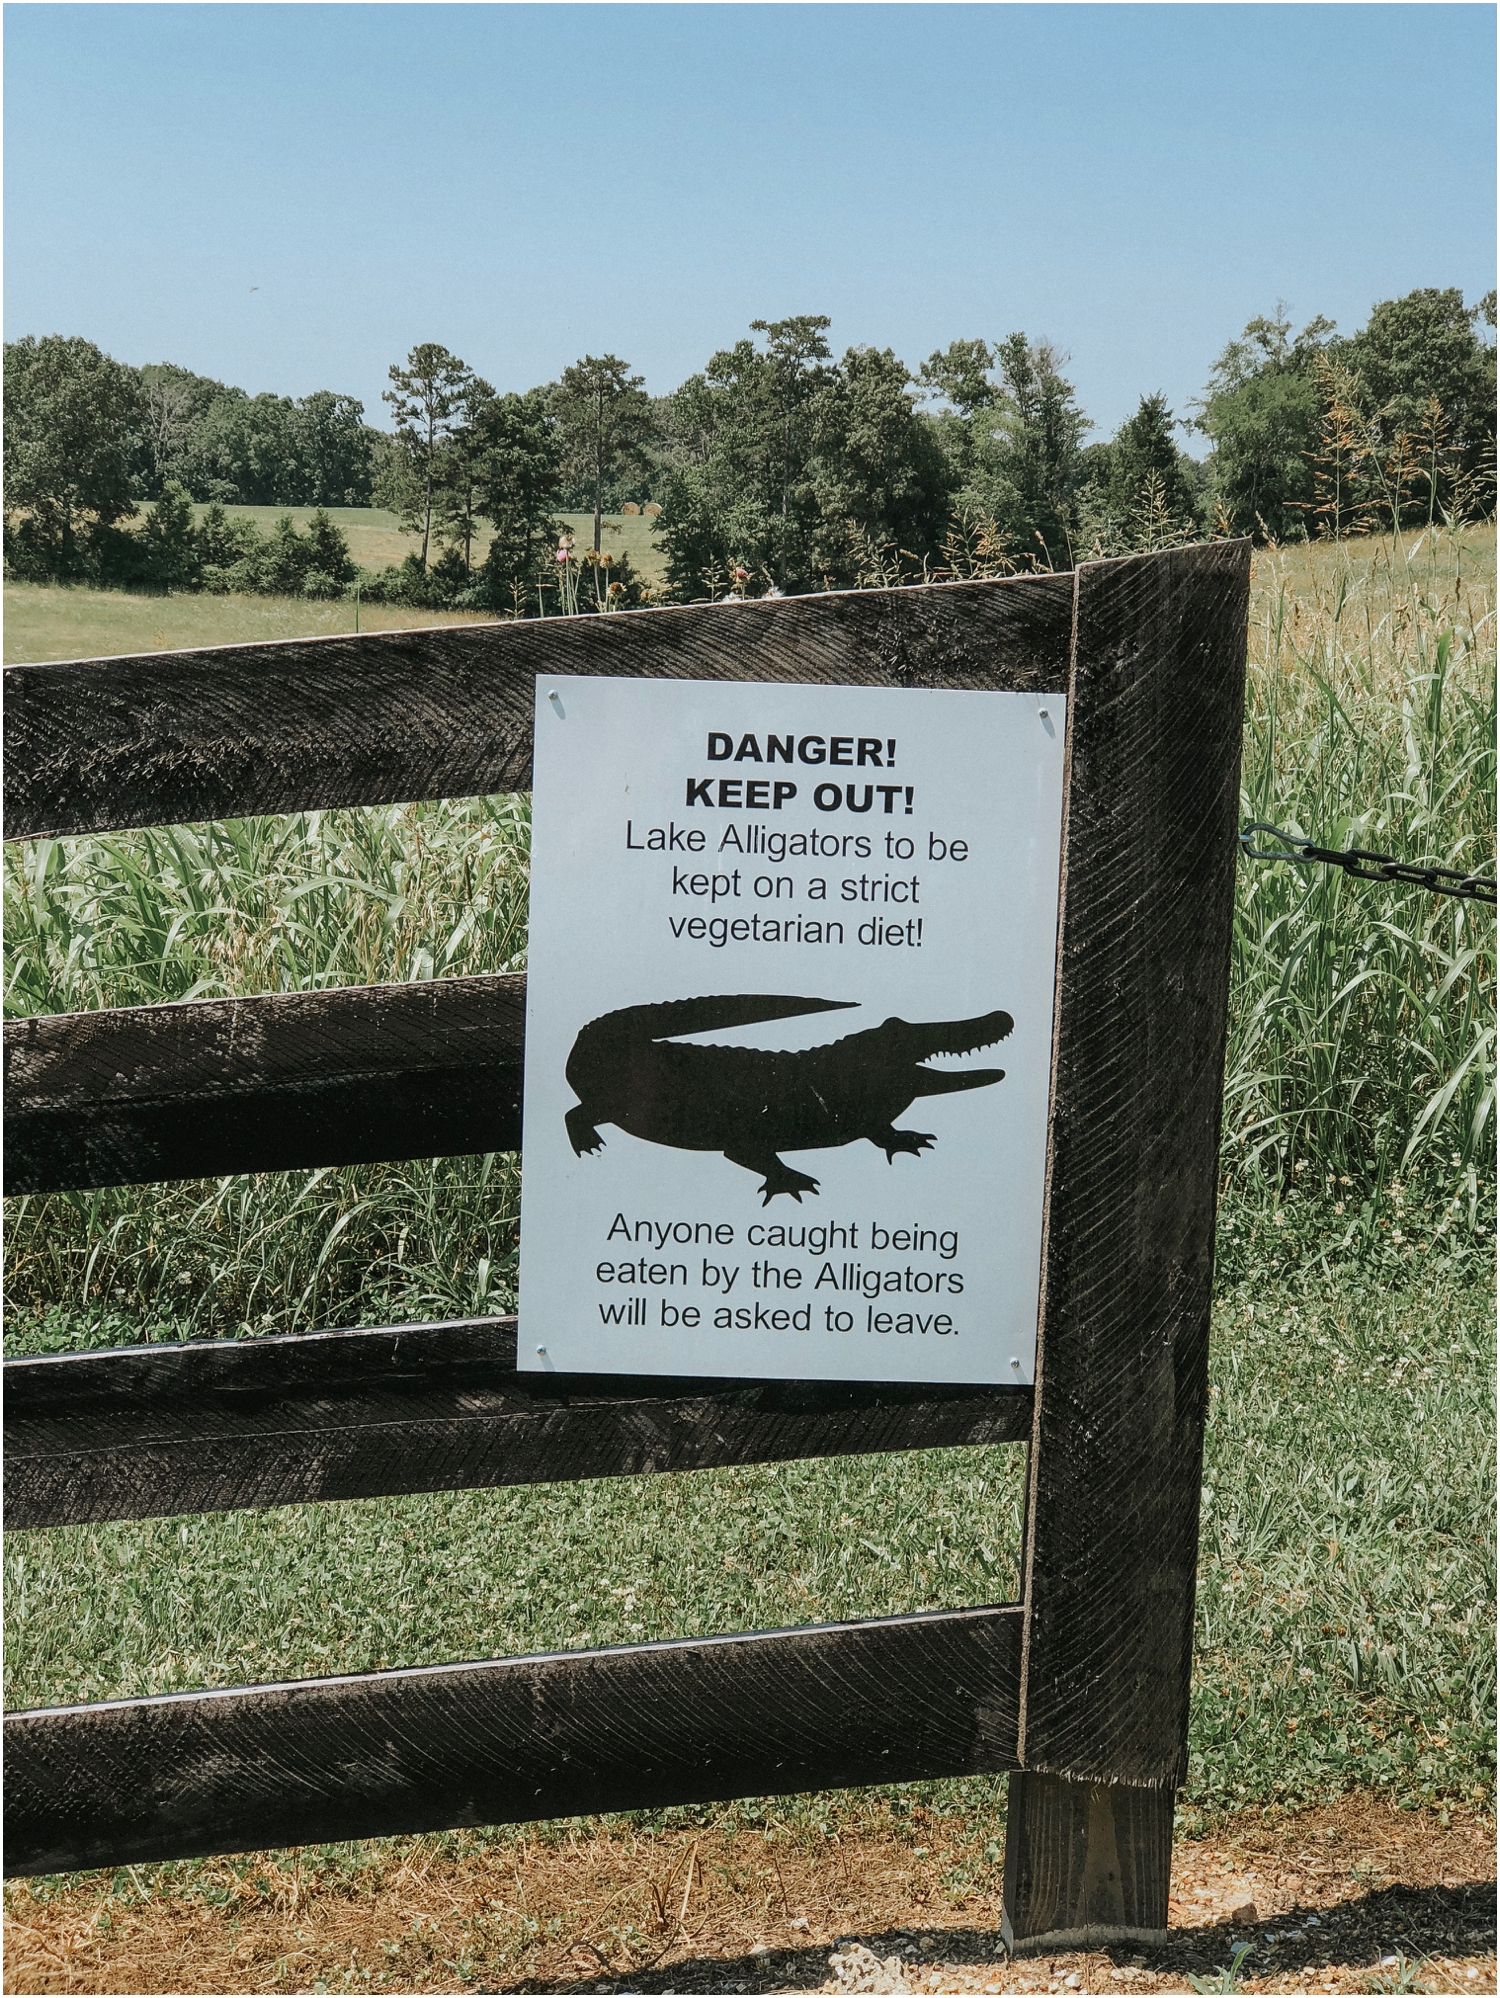 One of the best signs I've seen, found at Howe Farms at Celeste and Nate's wedding!